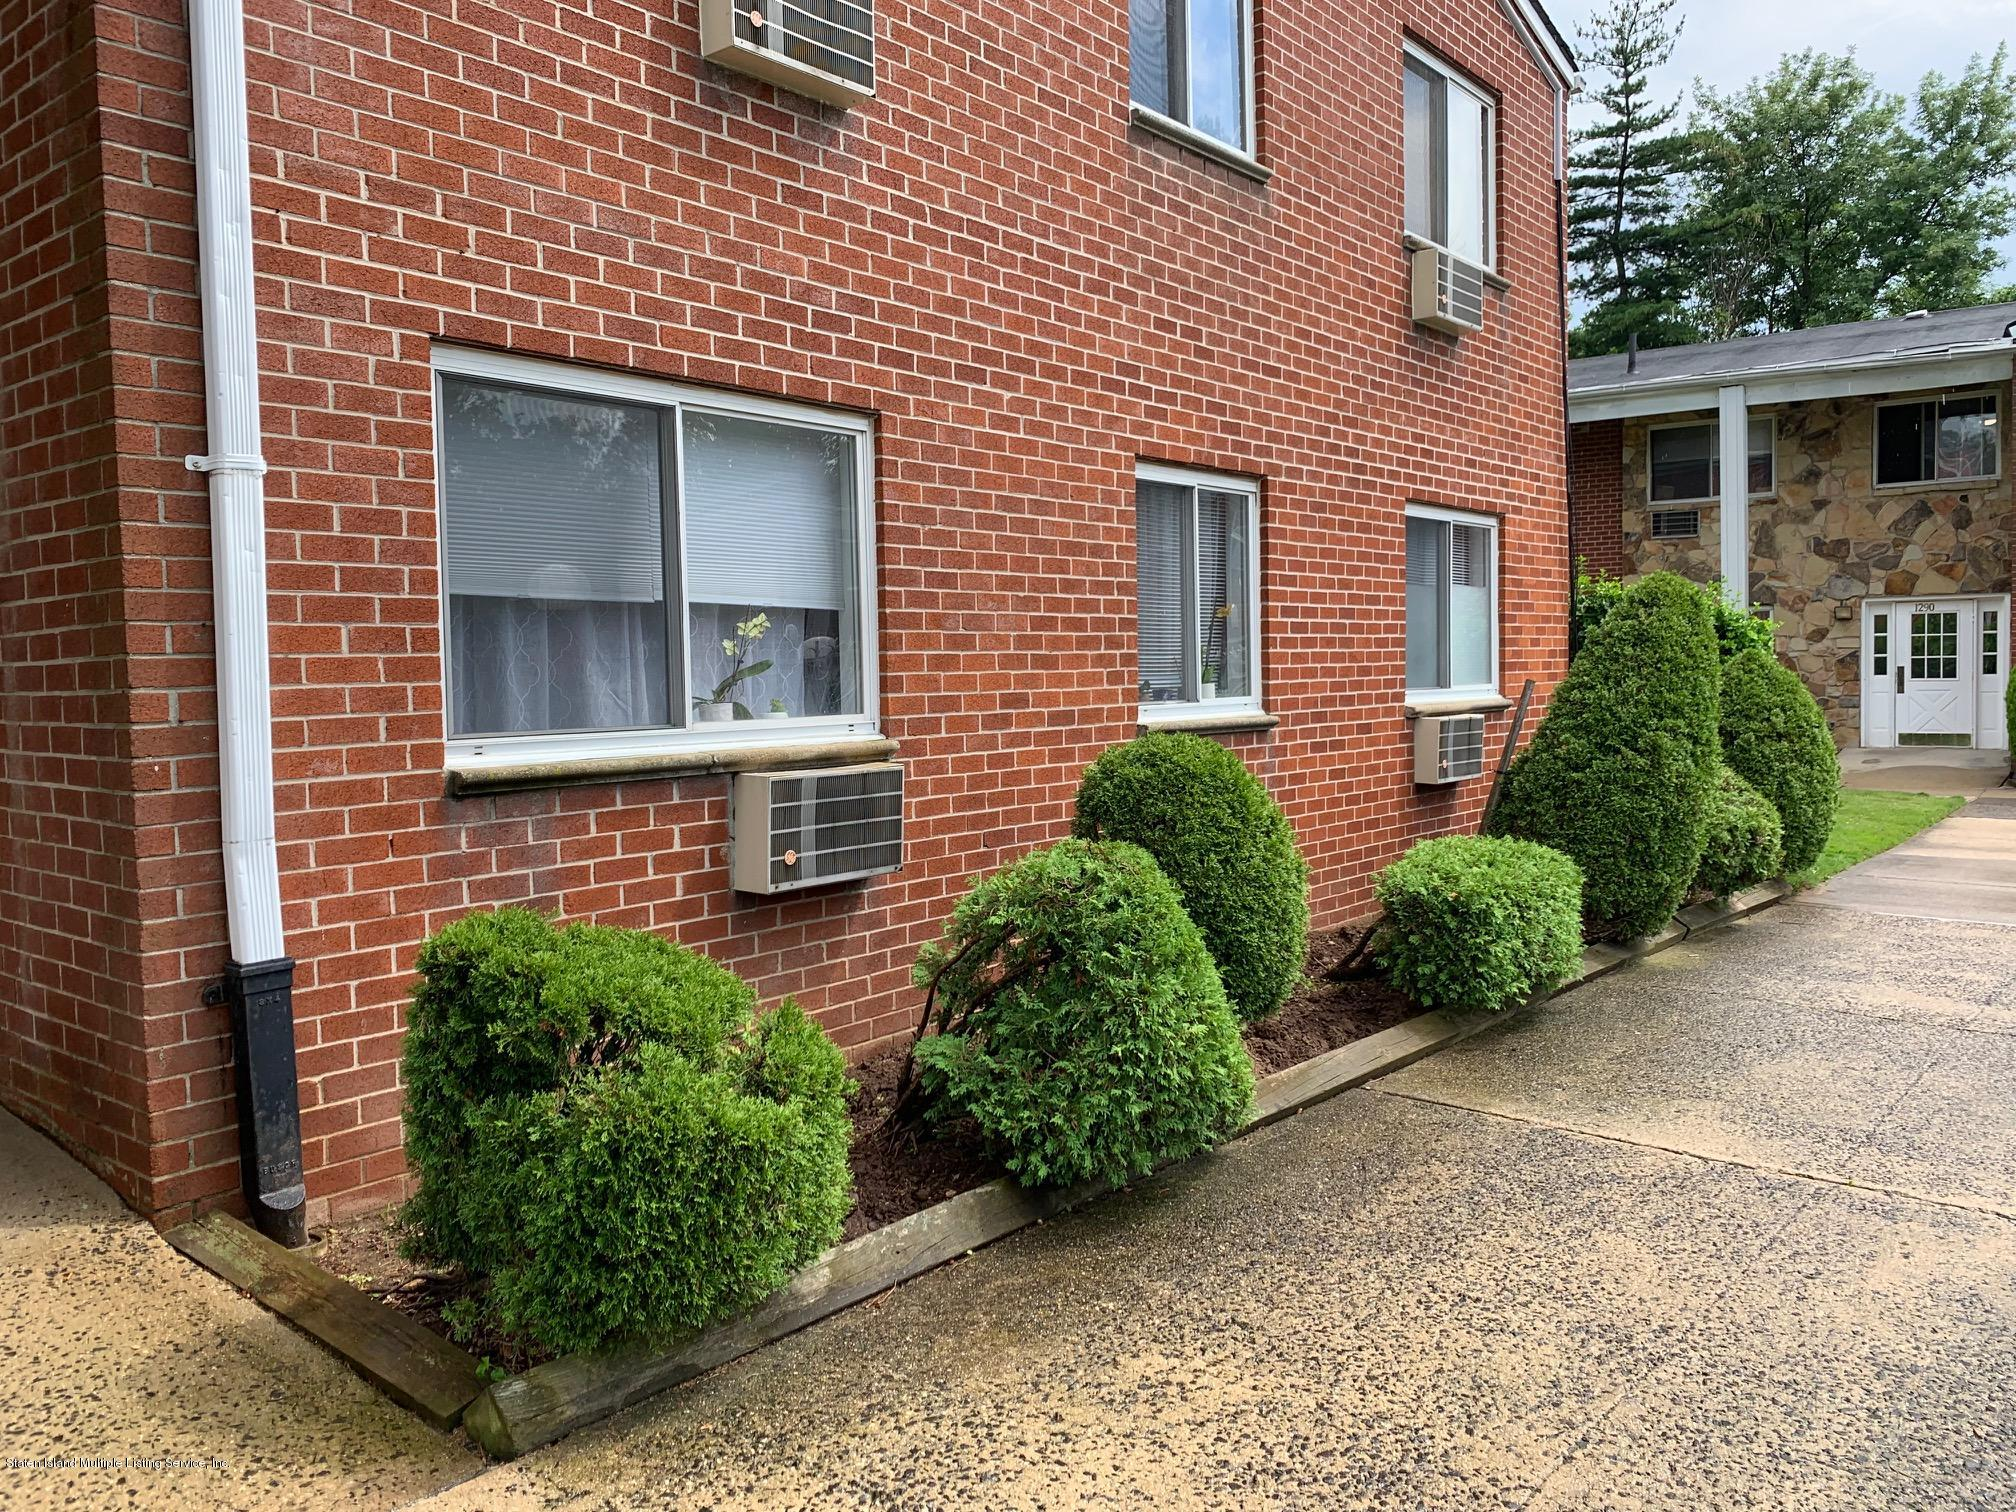 #1h 1286 Rockland Avenue,Staten Island,New York,10314,United States,2 Bedrooms Bedrooms,5 Rooms Rooms,1 BathroomBathrooms,Residential,Rockland,1130594